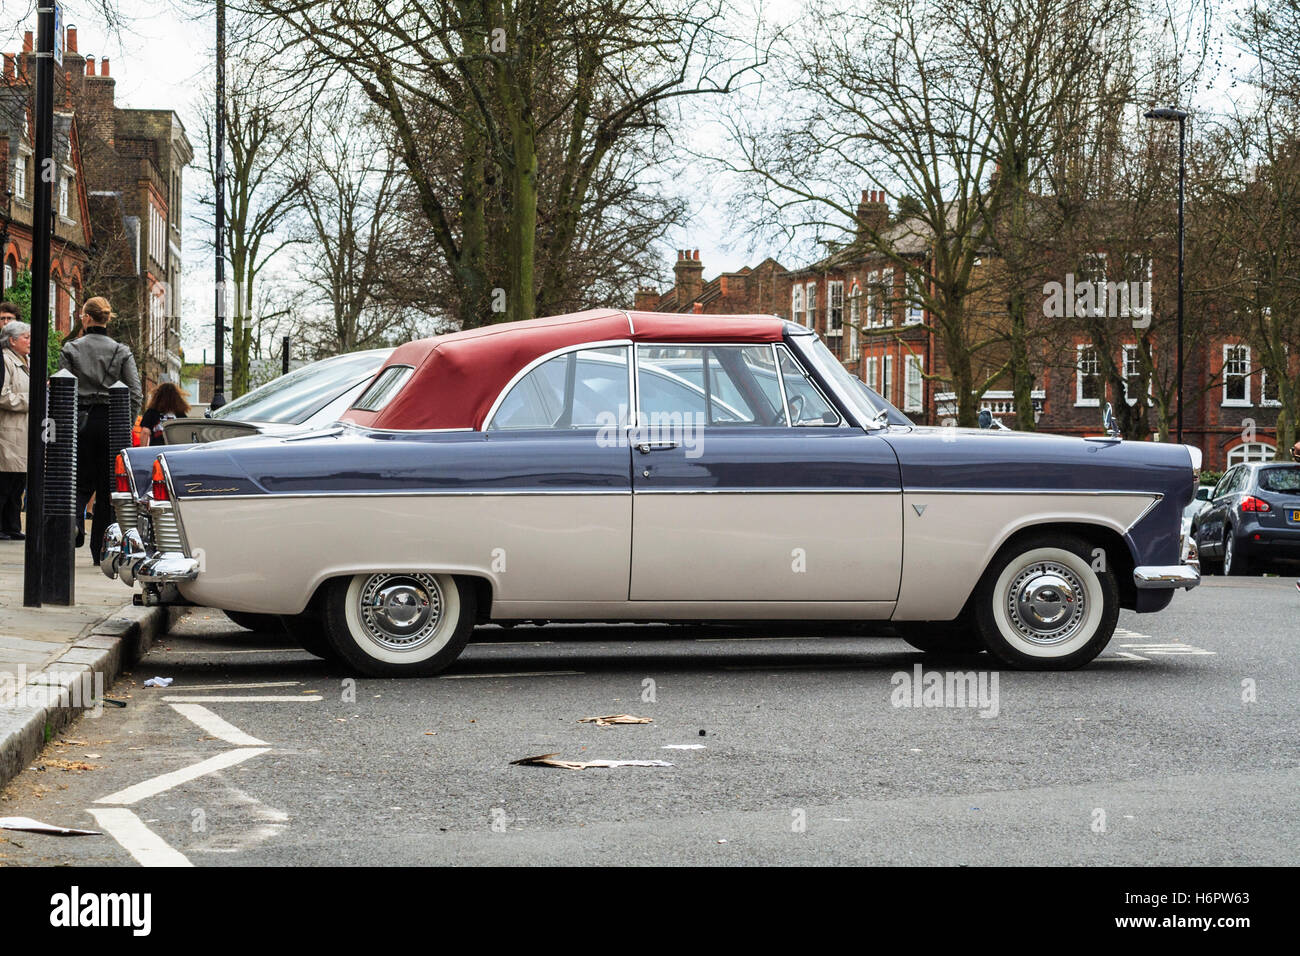 A Classic 1960s Two Tone Ford Zodiac Car With Whitewall Tyres And